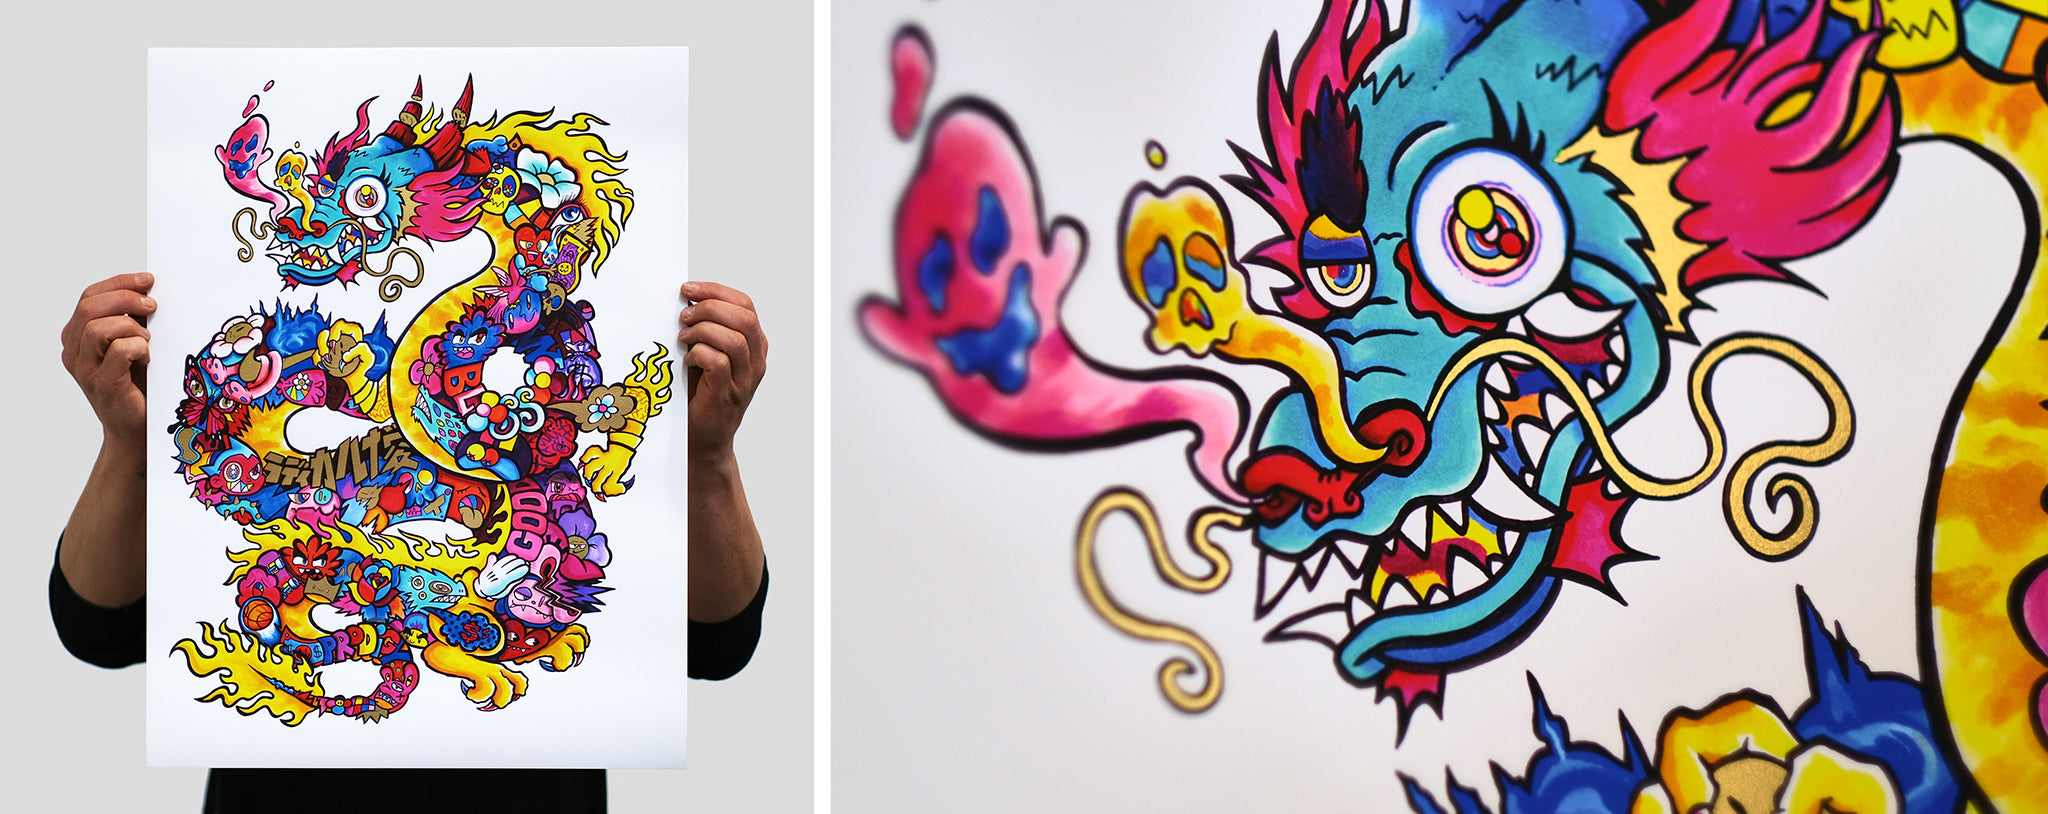 Blending realities, NFT release by VEXX accompanied by screen printed giclee editions by white duck editions